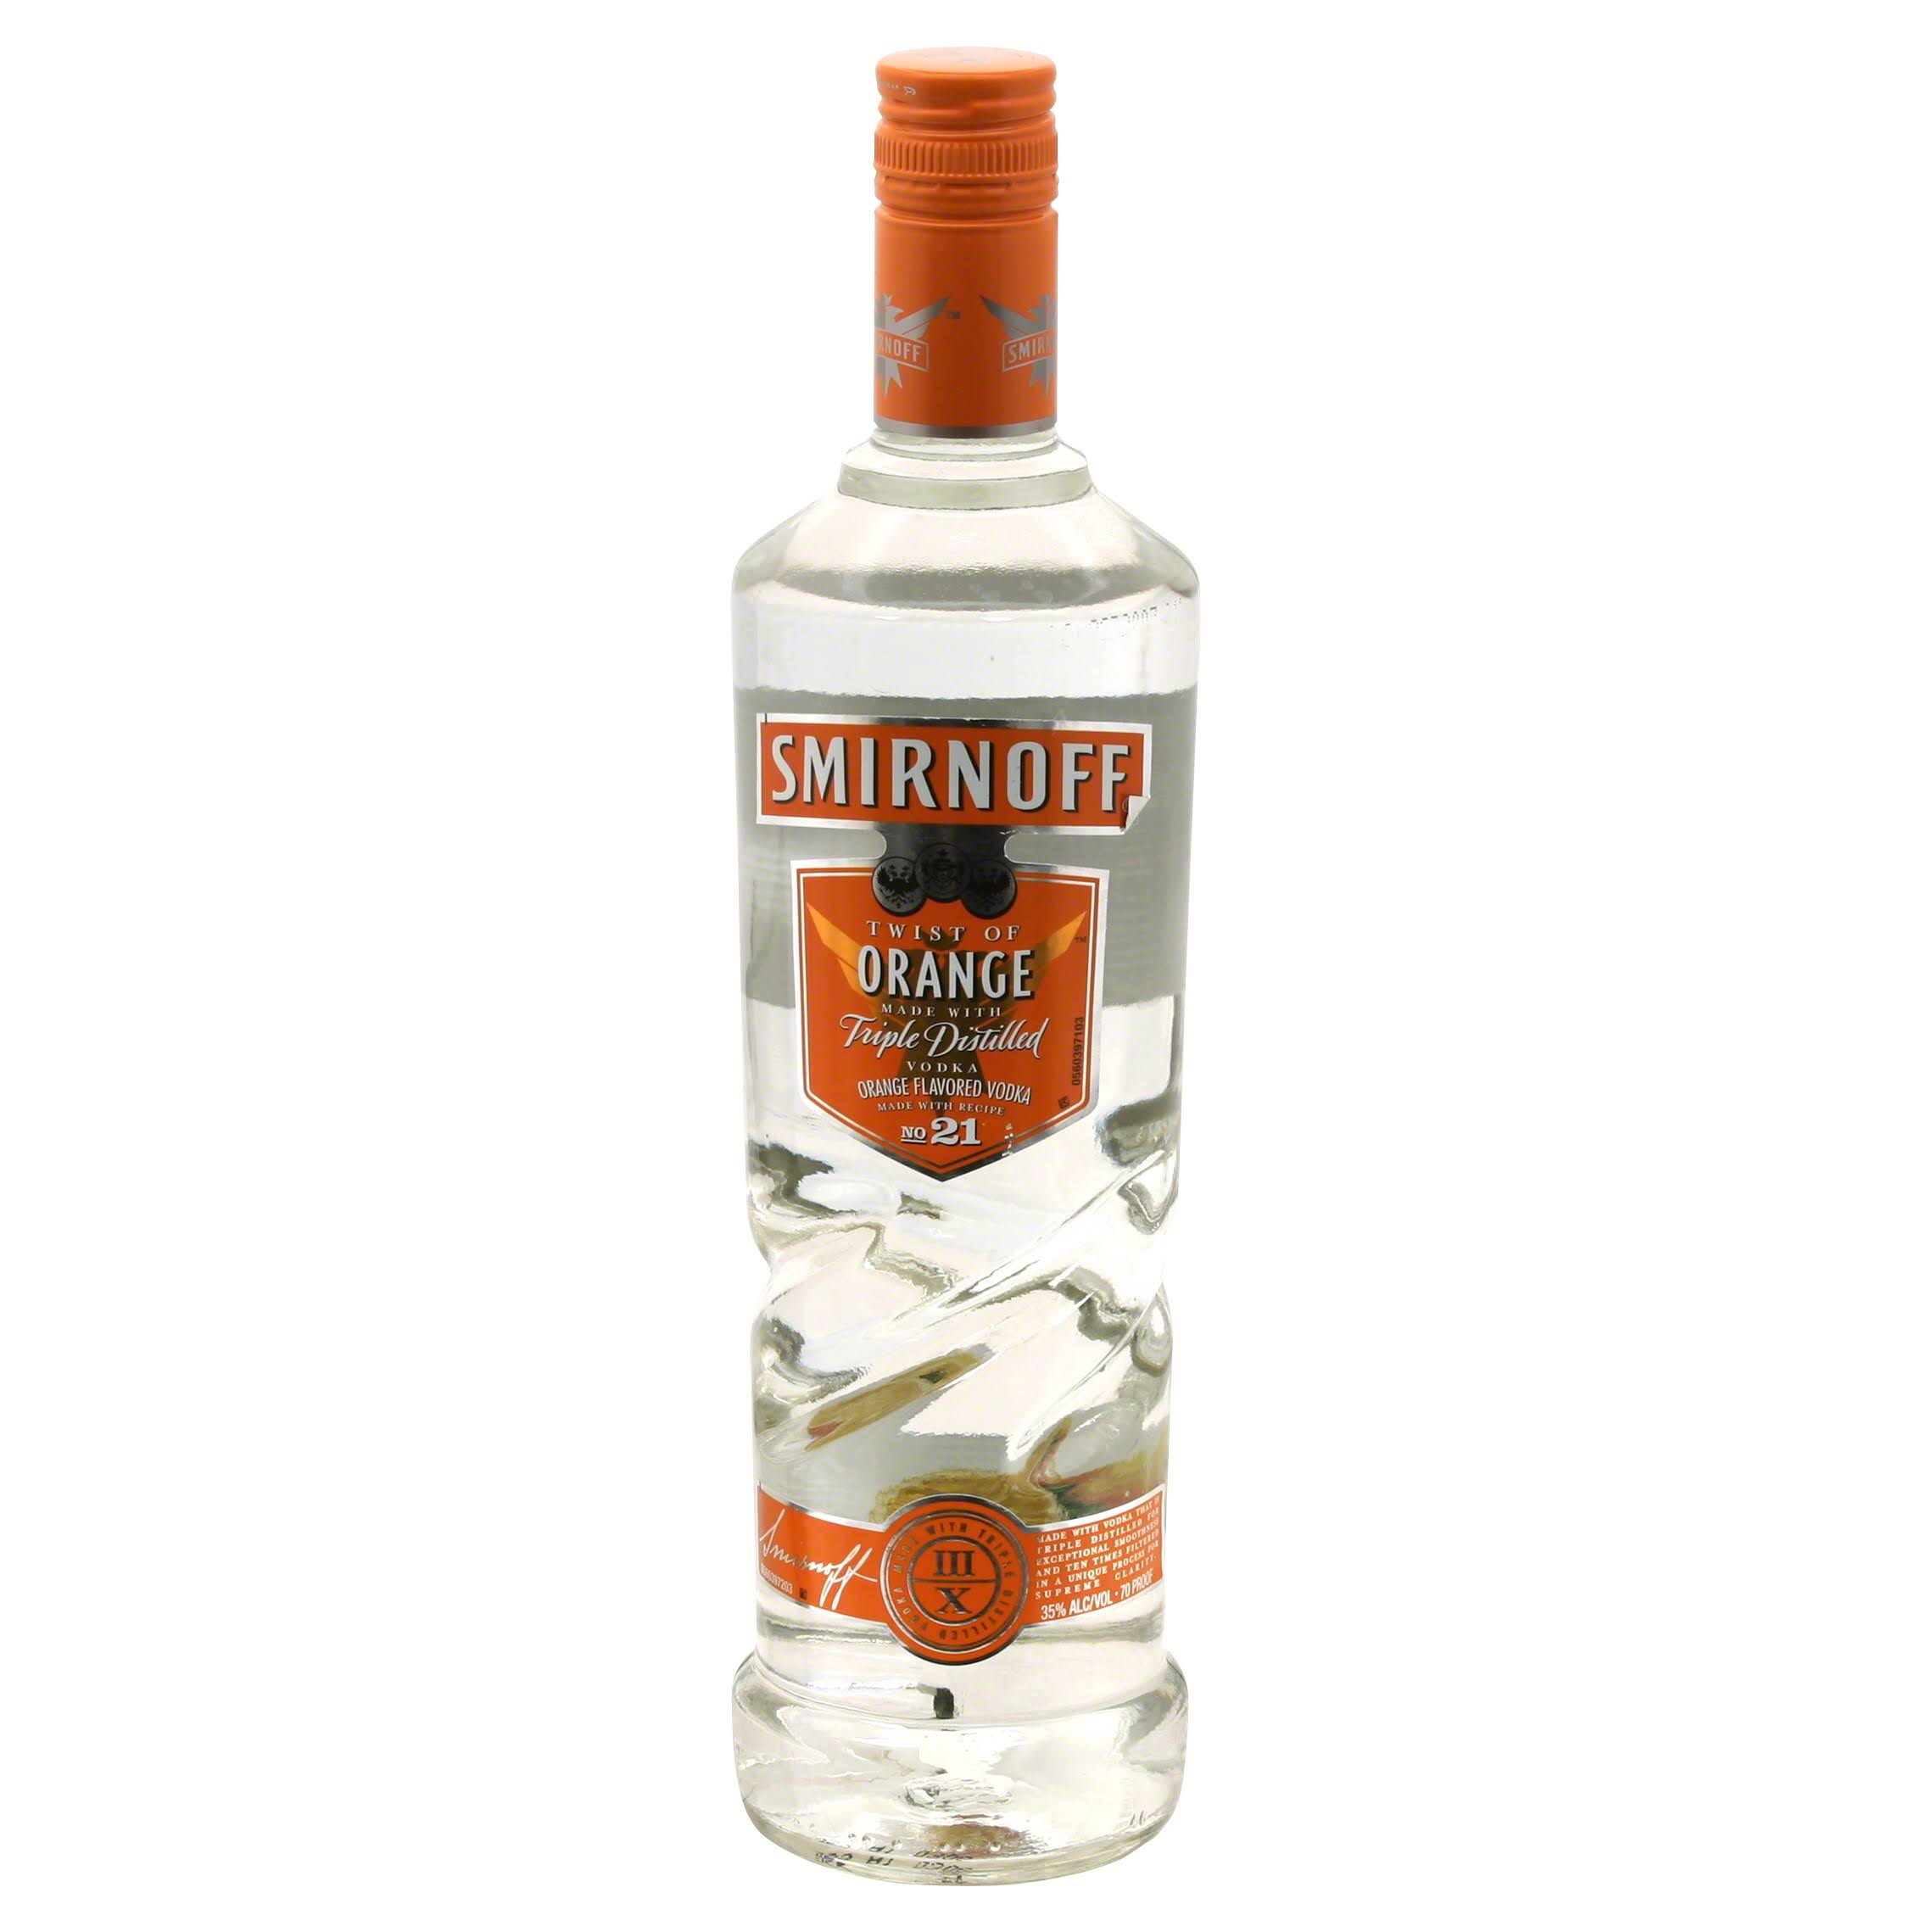 Smirnoff Flavored Vodka, Twist of Orange - 750 ml